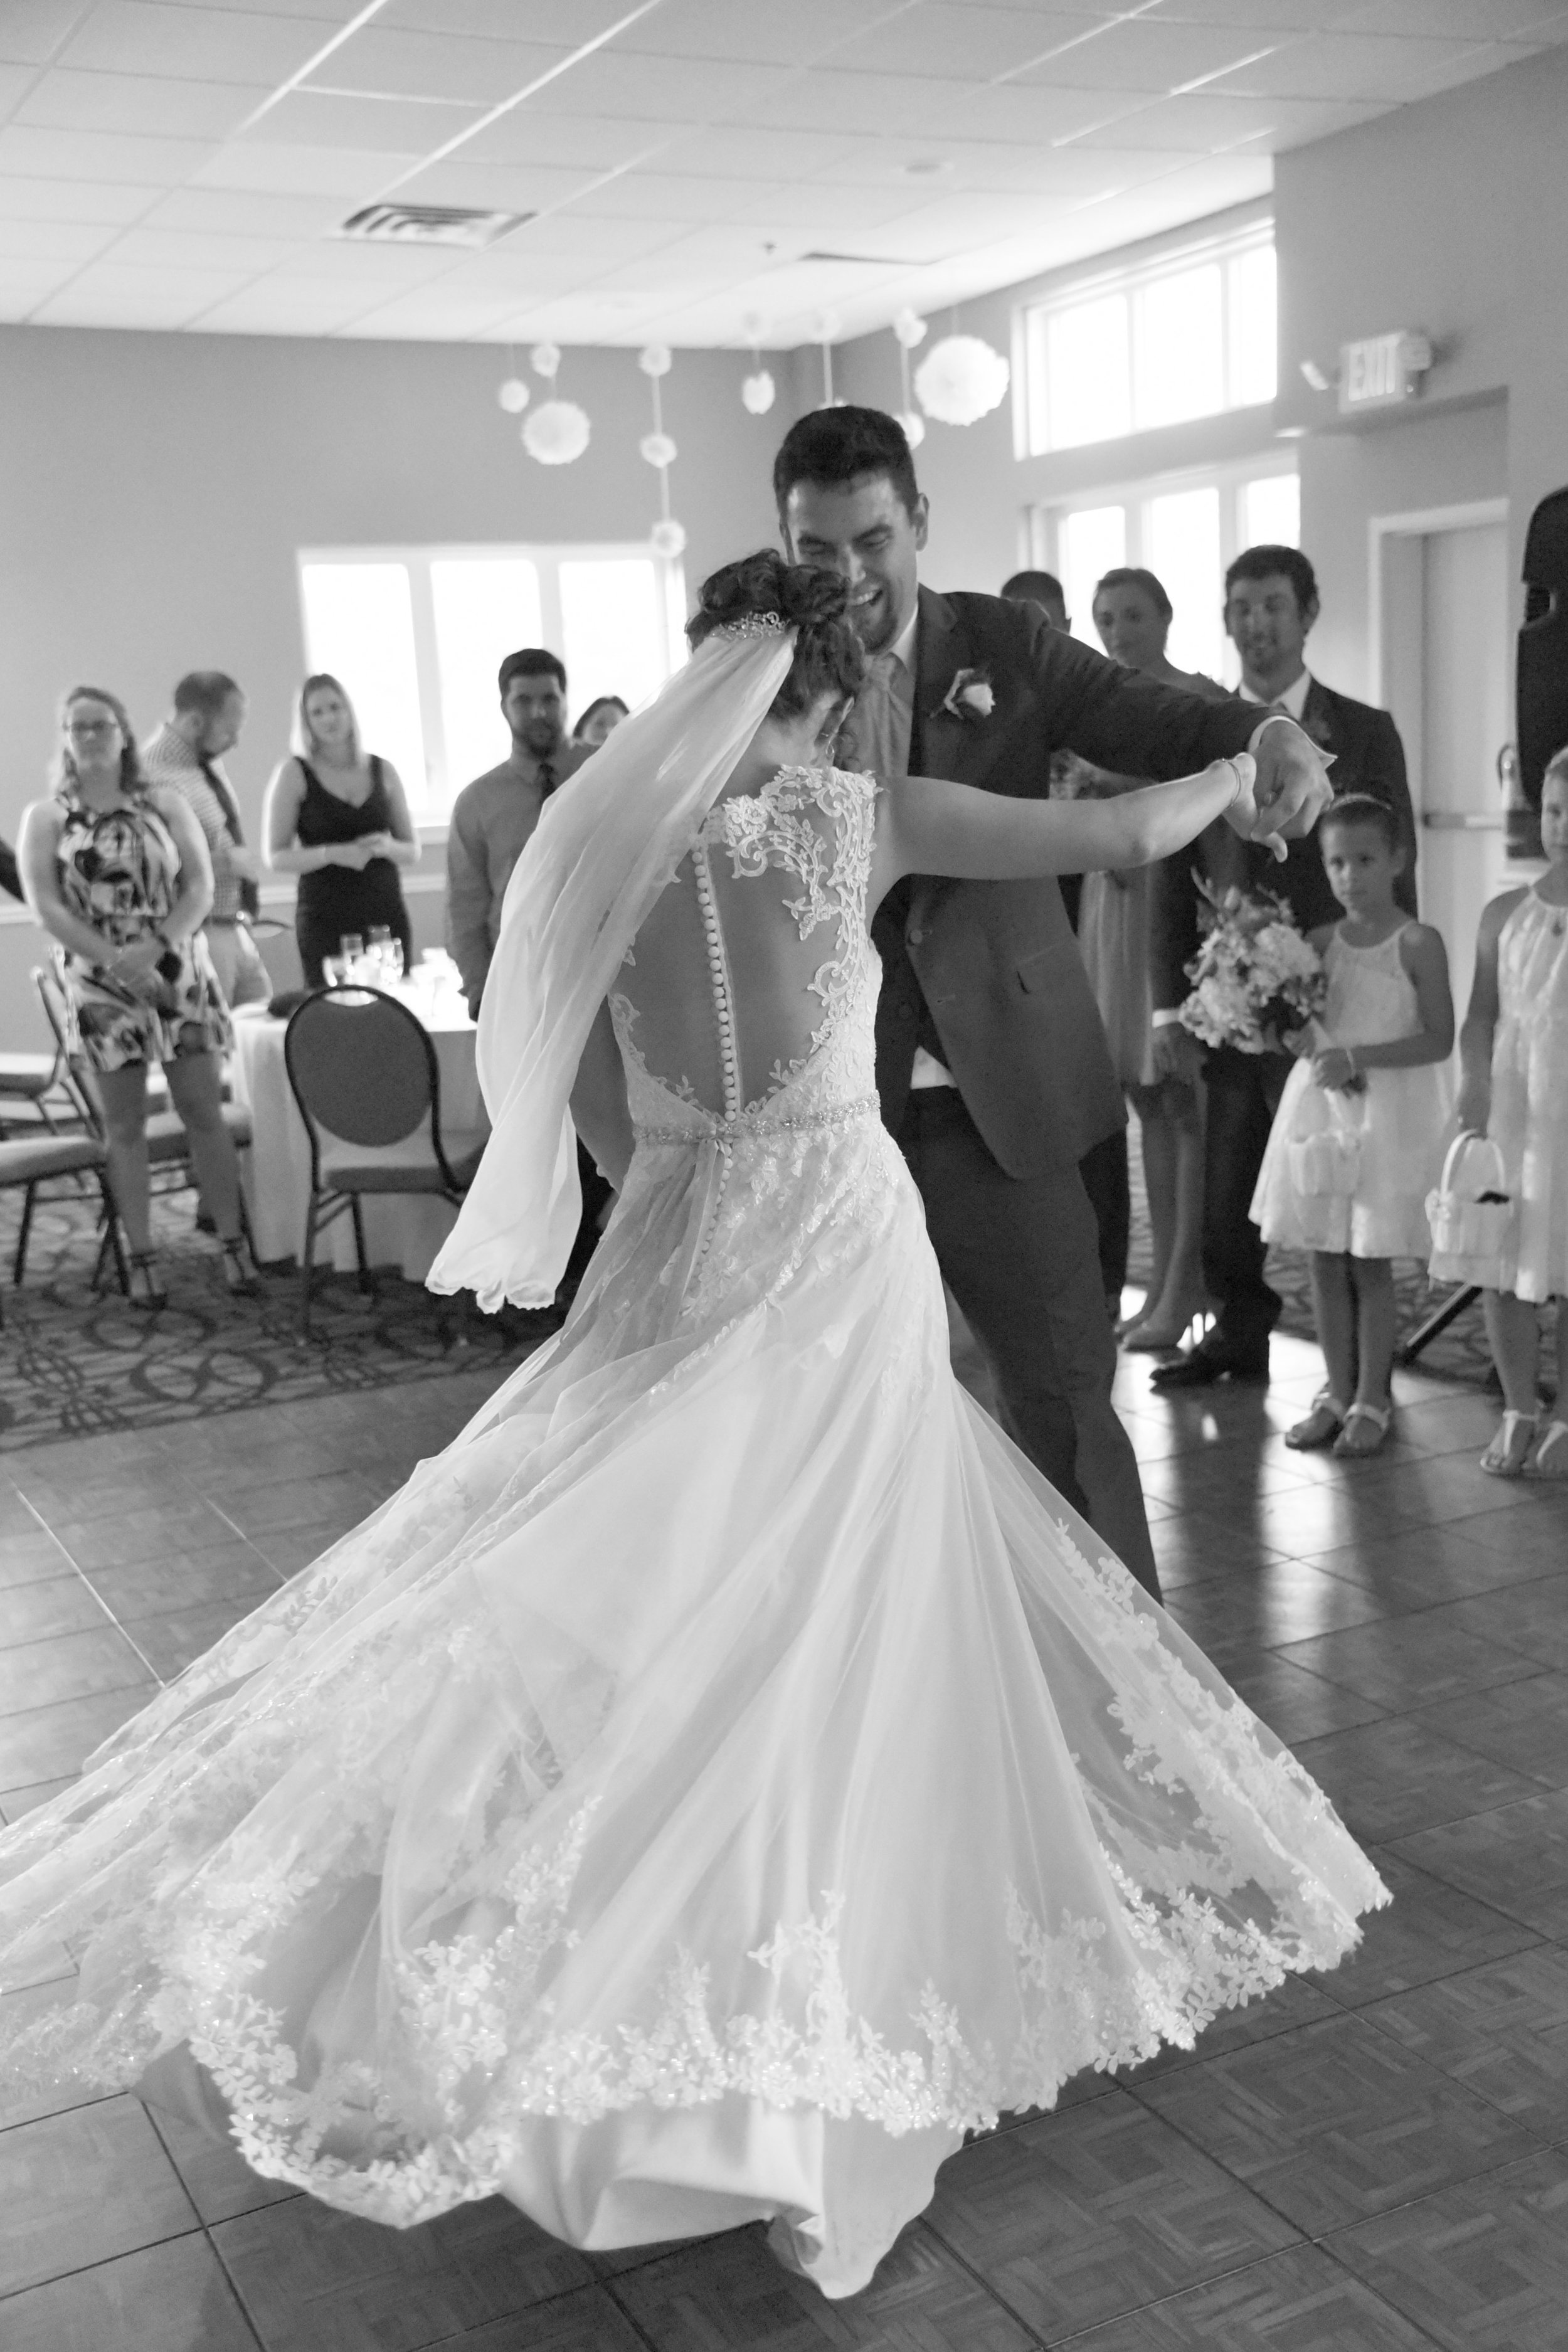 DeniseEPhotography_Wedding004.jpg